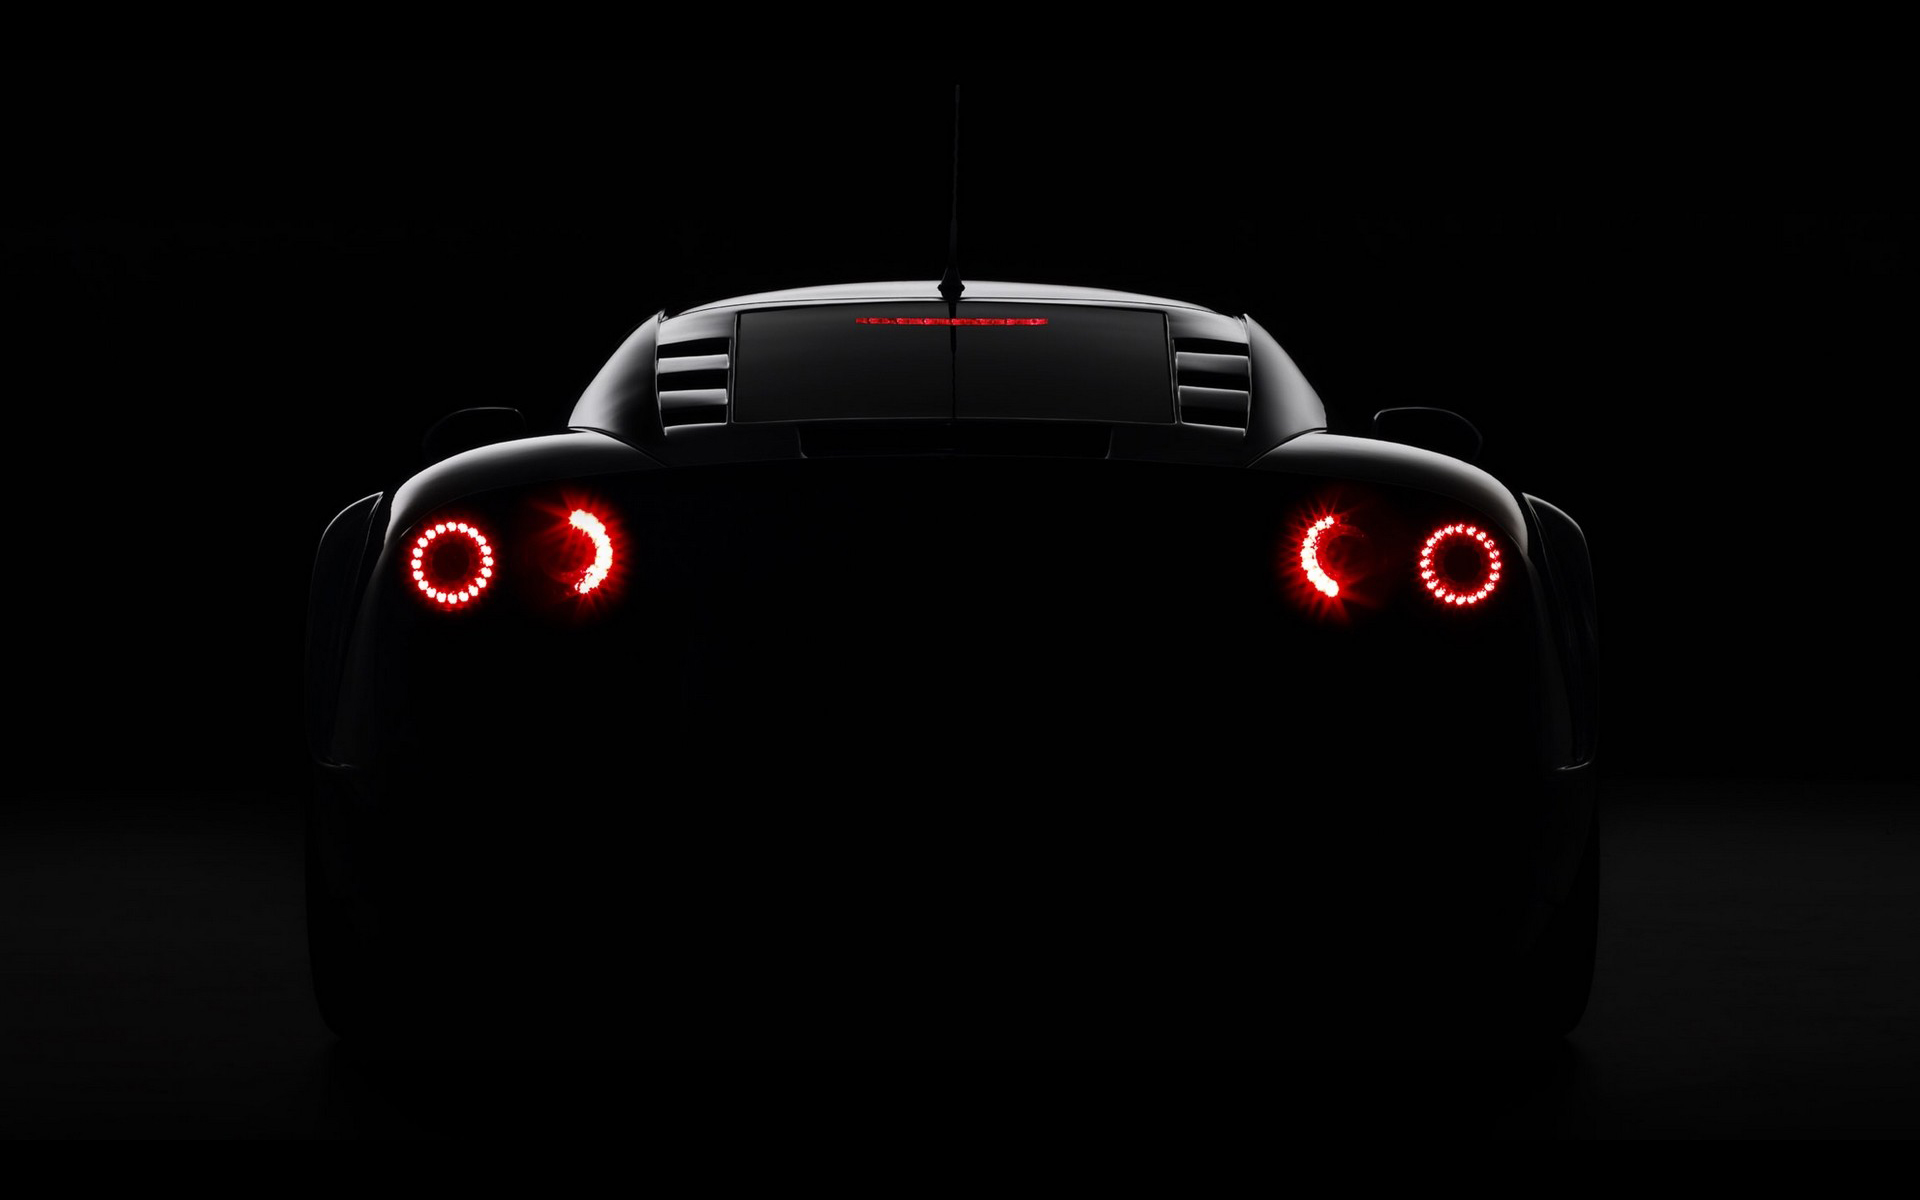 Supercar rear lights